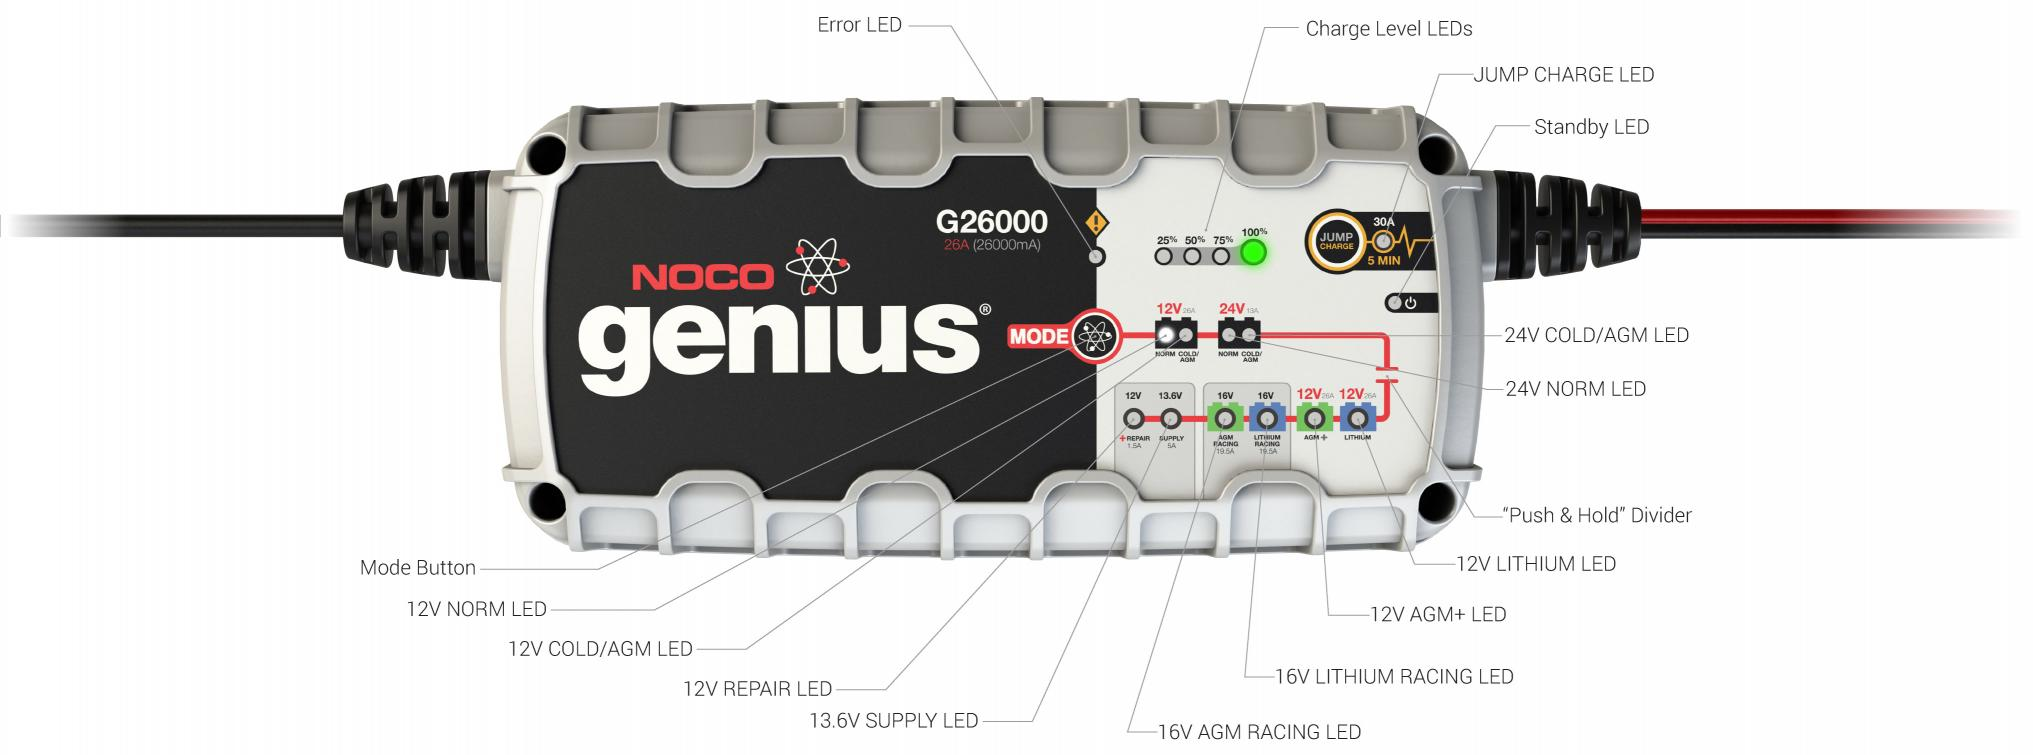 noco-genius-g26000-12v-16v-24v-automotive-car-battery-charger-agm-deep-cycle-lithium-desulfator-frankies.jpg